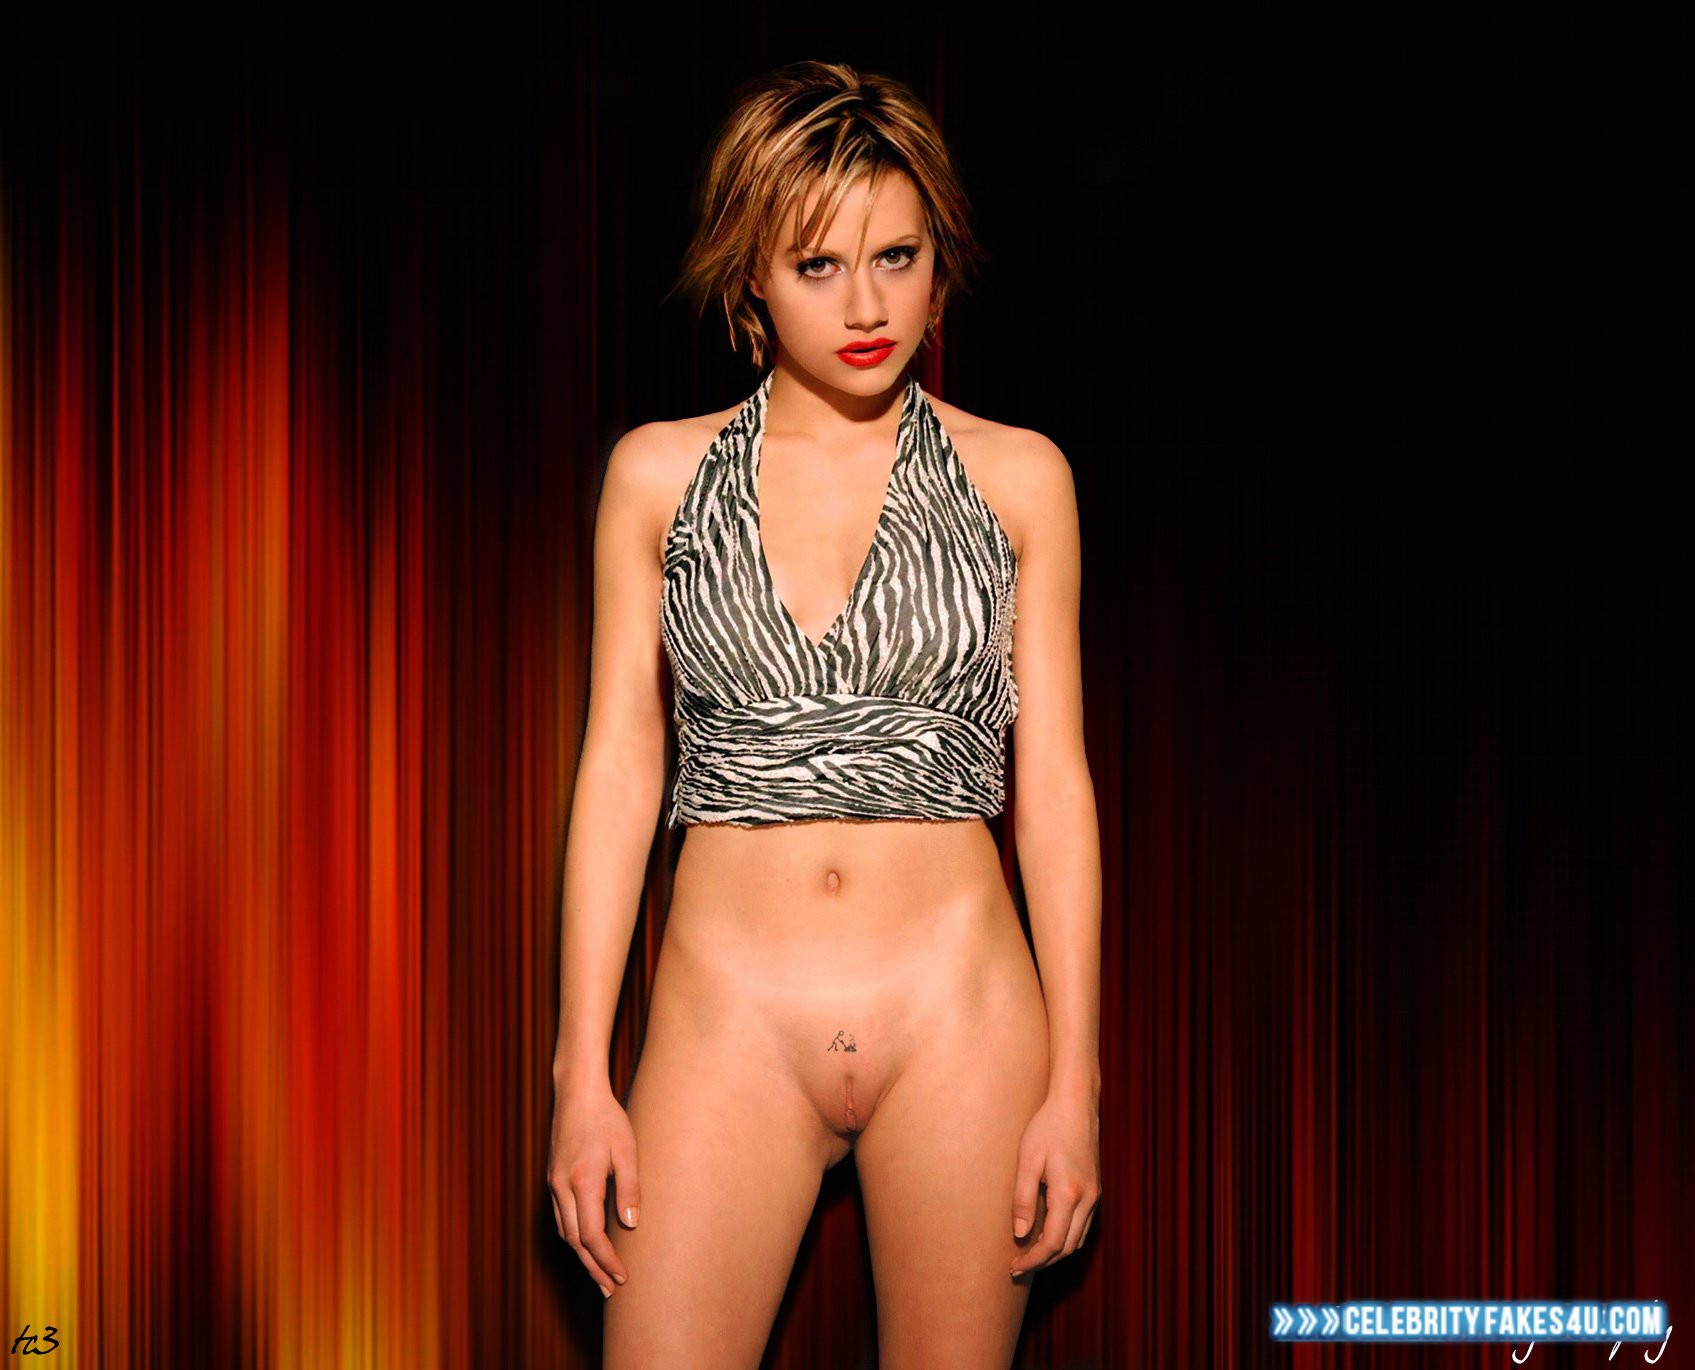 Brittany murphy nude pics — 13